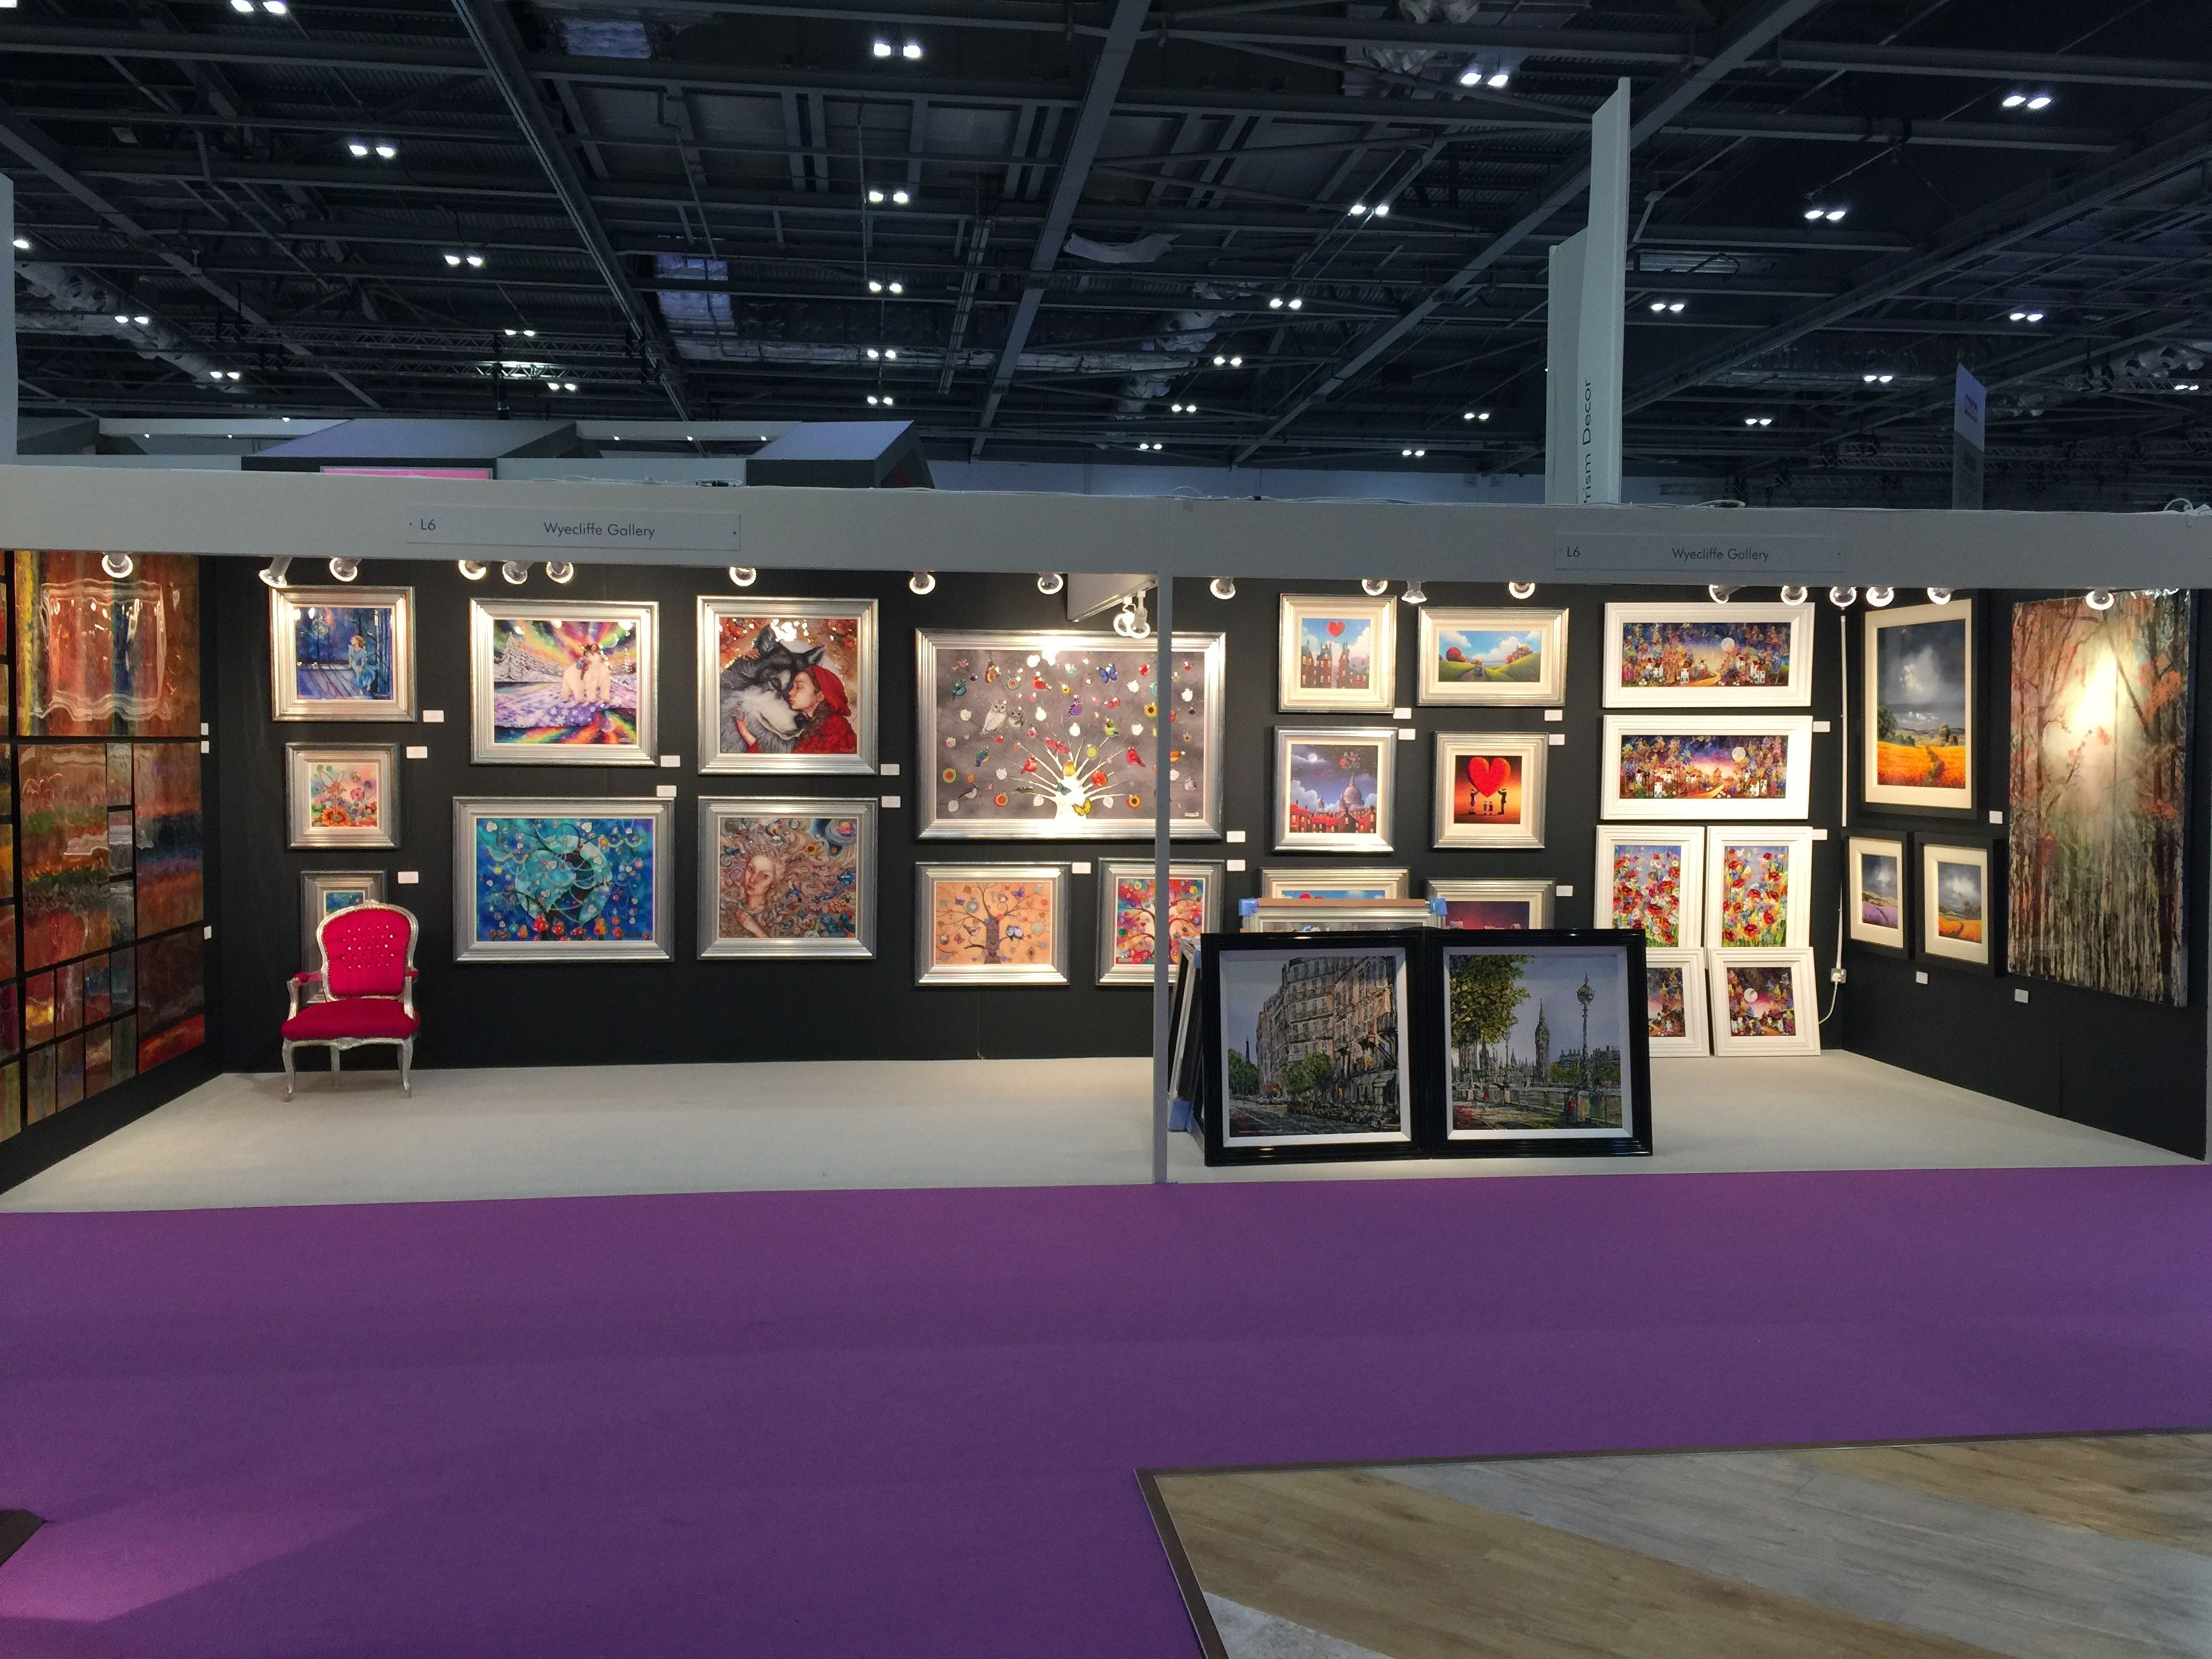 Wyecliffe Galleries at the Grand Designs Live exhibitions 2015.